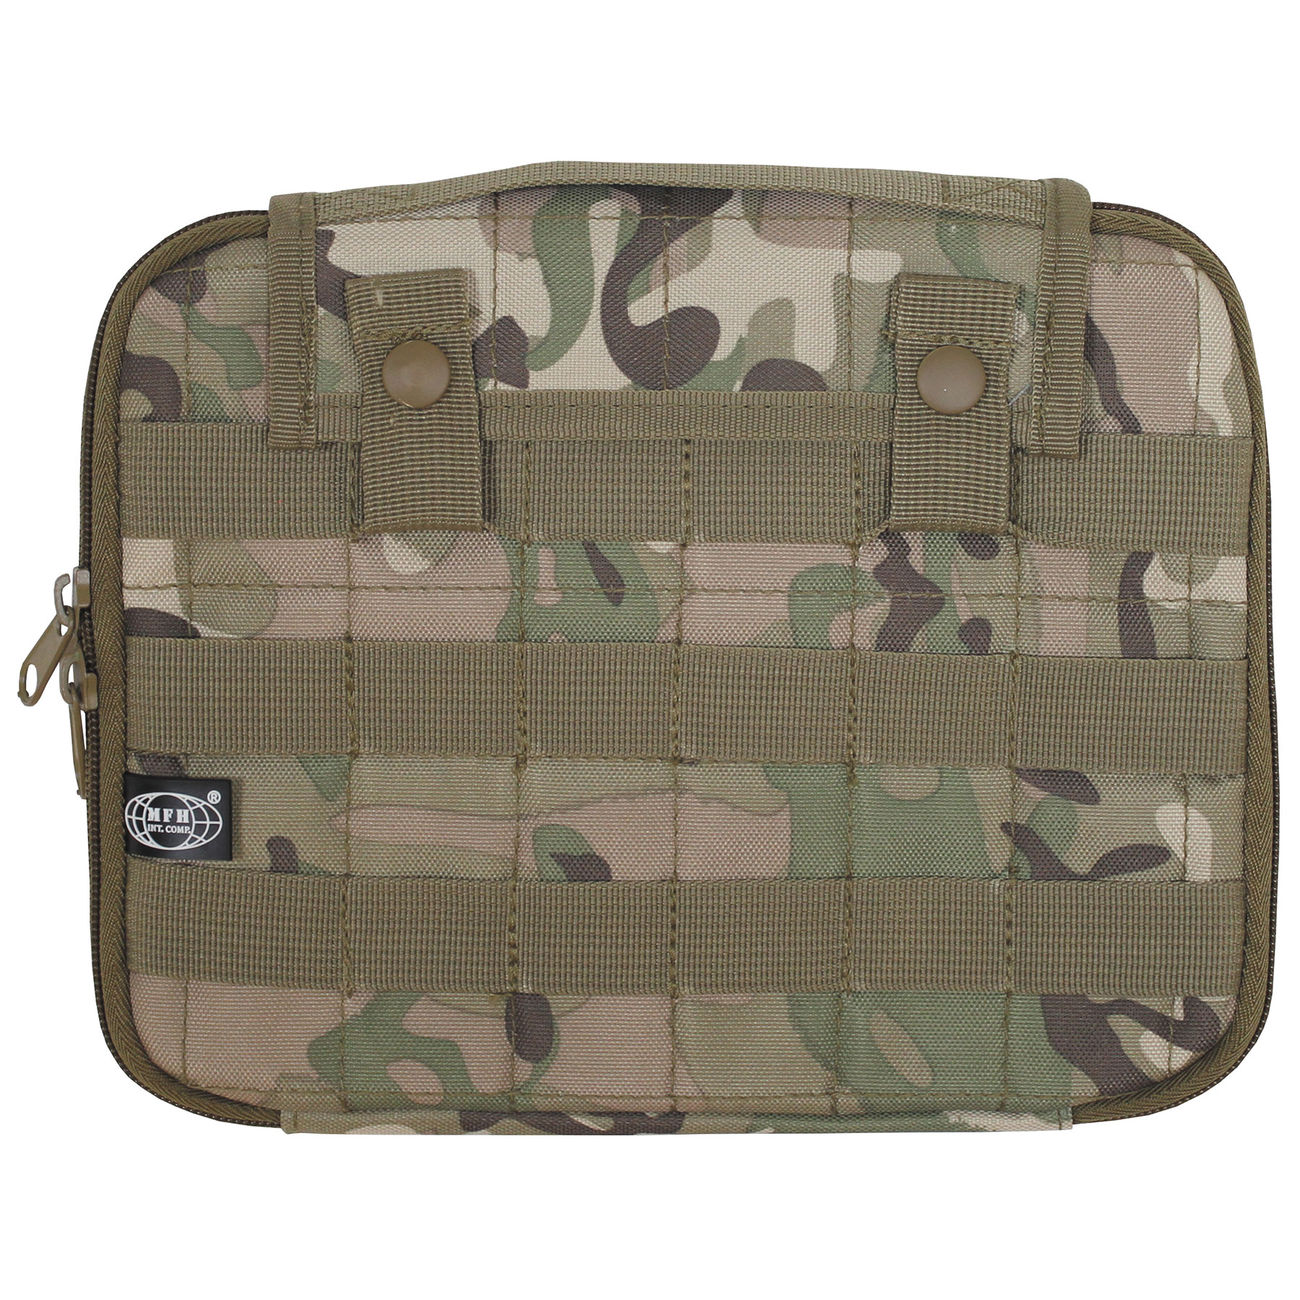 MFH Tablet-Tasche Molle operation camo 1